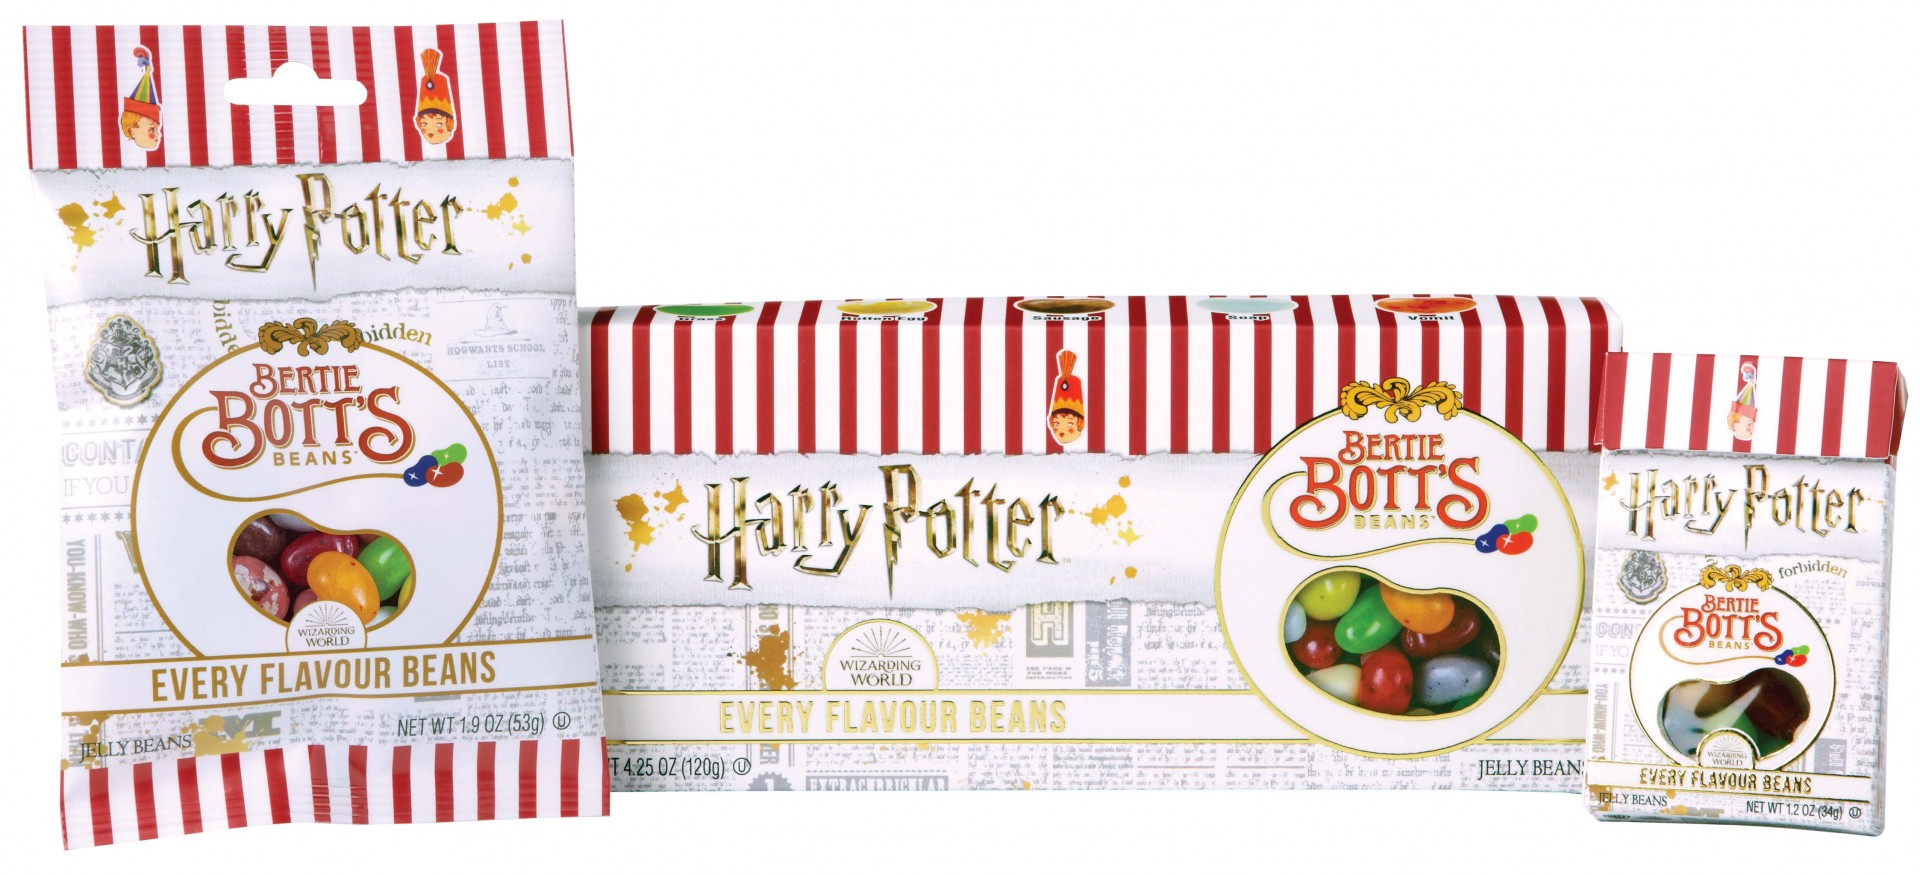 Bertie Botts Every-Flavour Beans